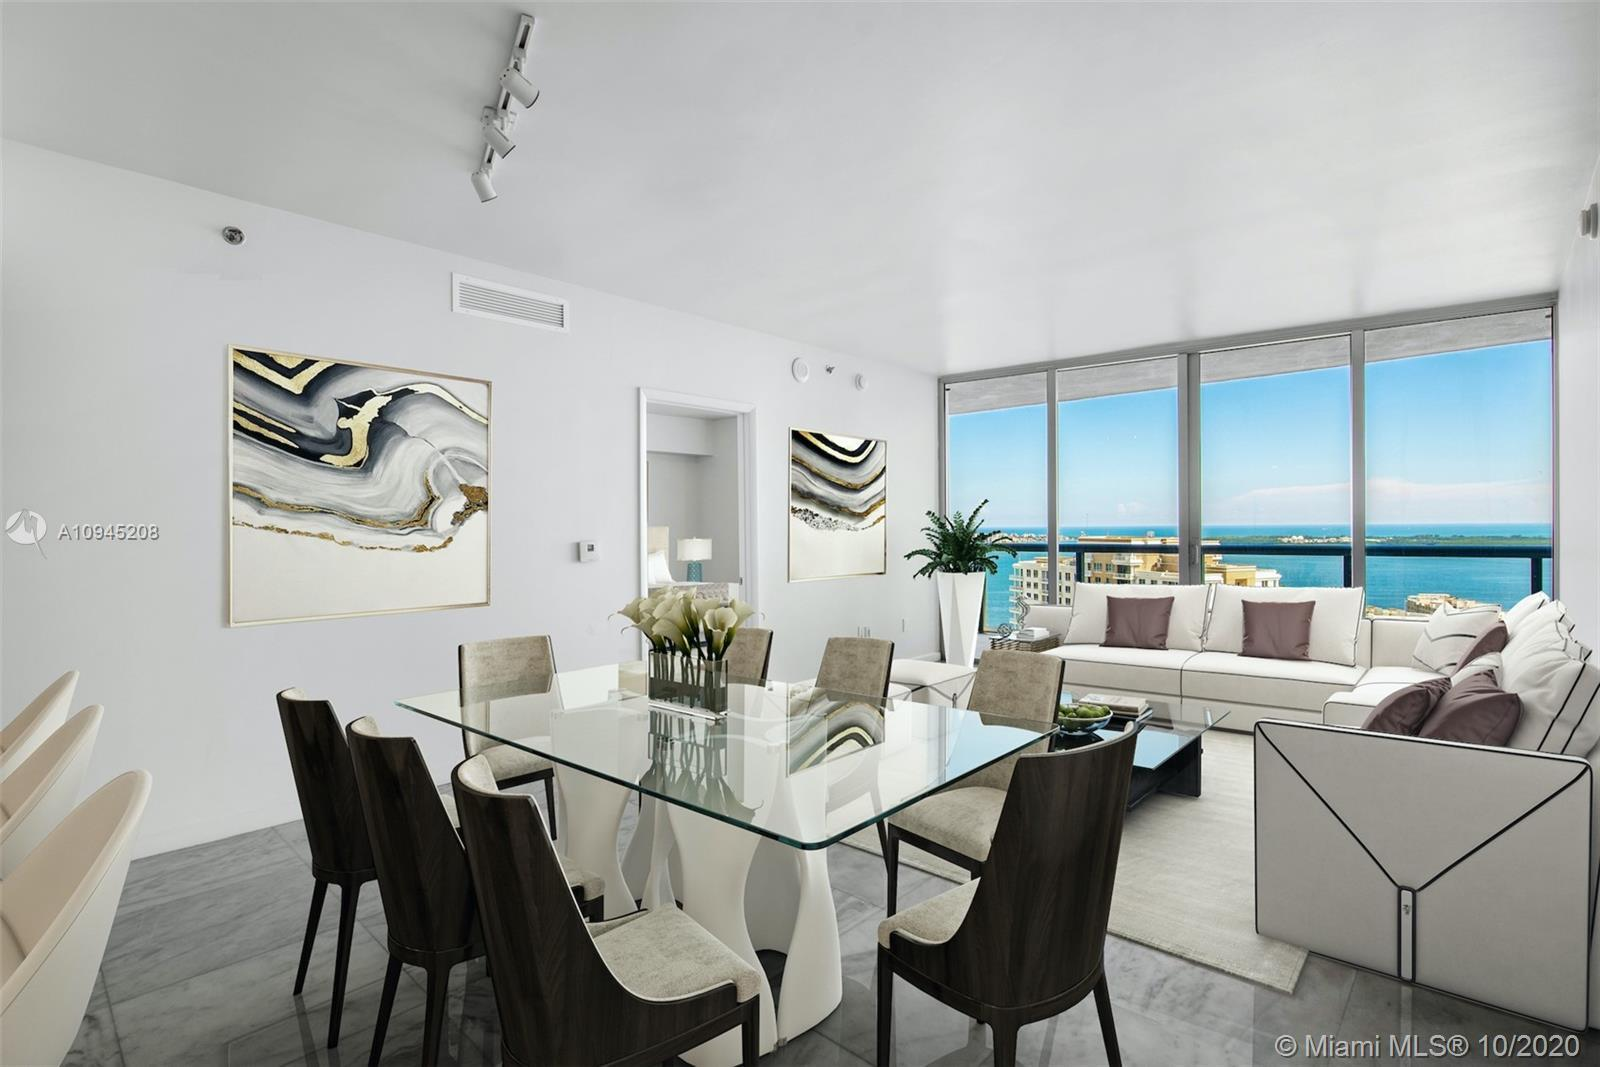 Stunning Brickell Key & Biscayne Bay views welcome you into this spacious 35th floor residence at Ic